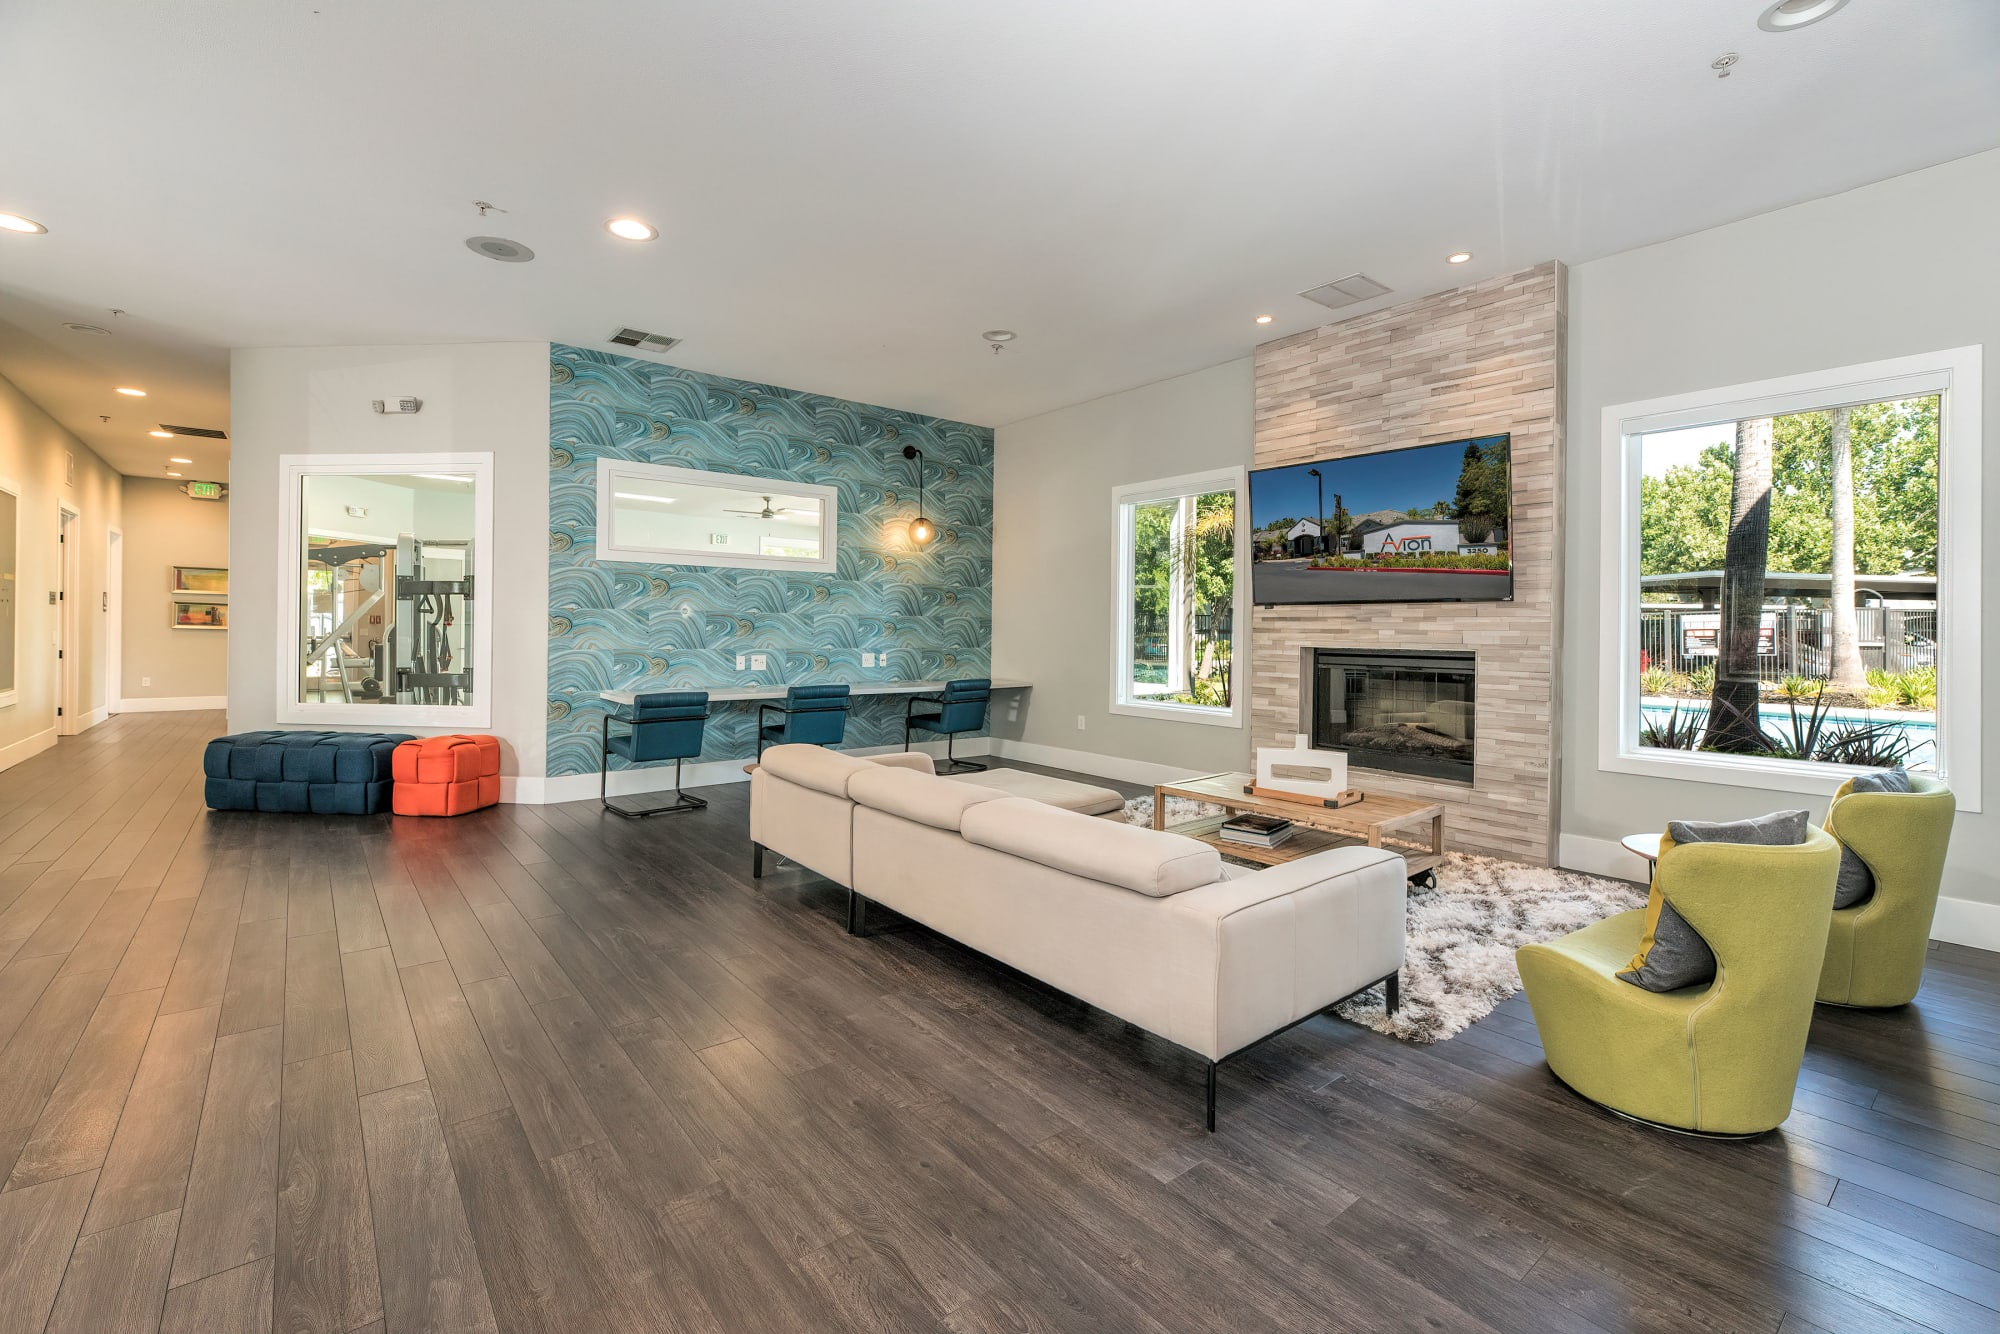 Model living room in Rancho Cordova, California at Avion Apartments